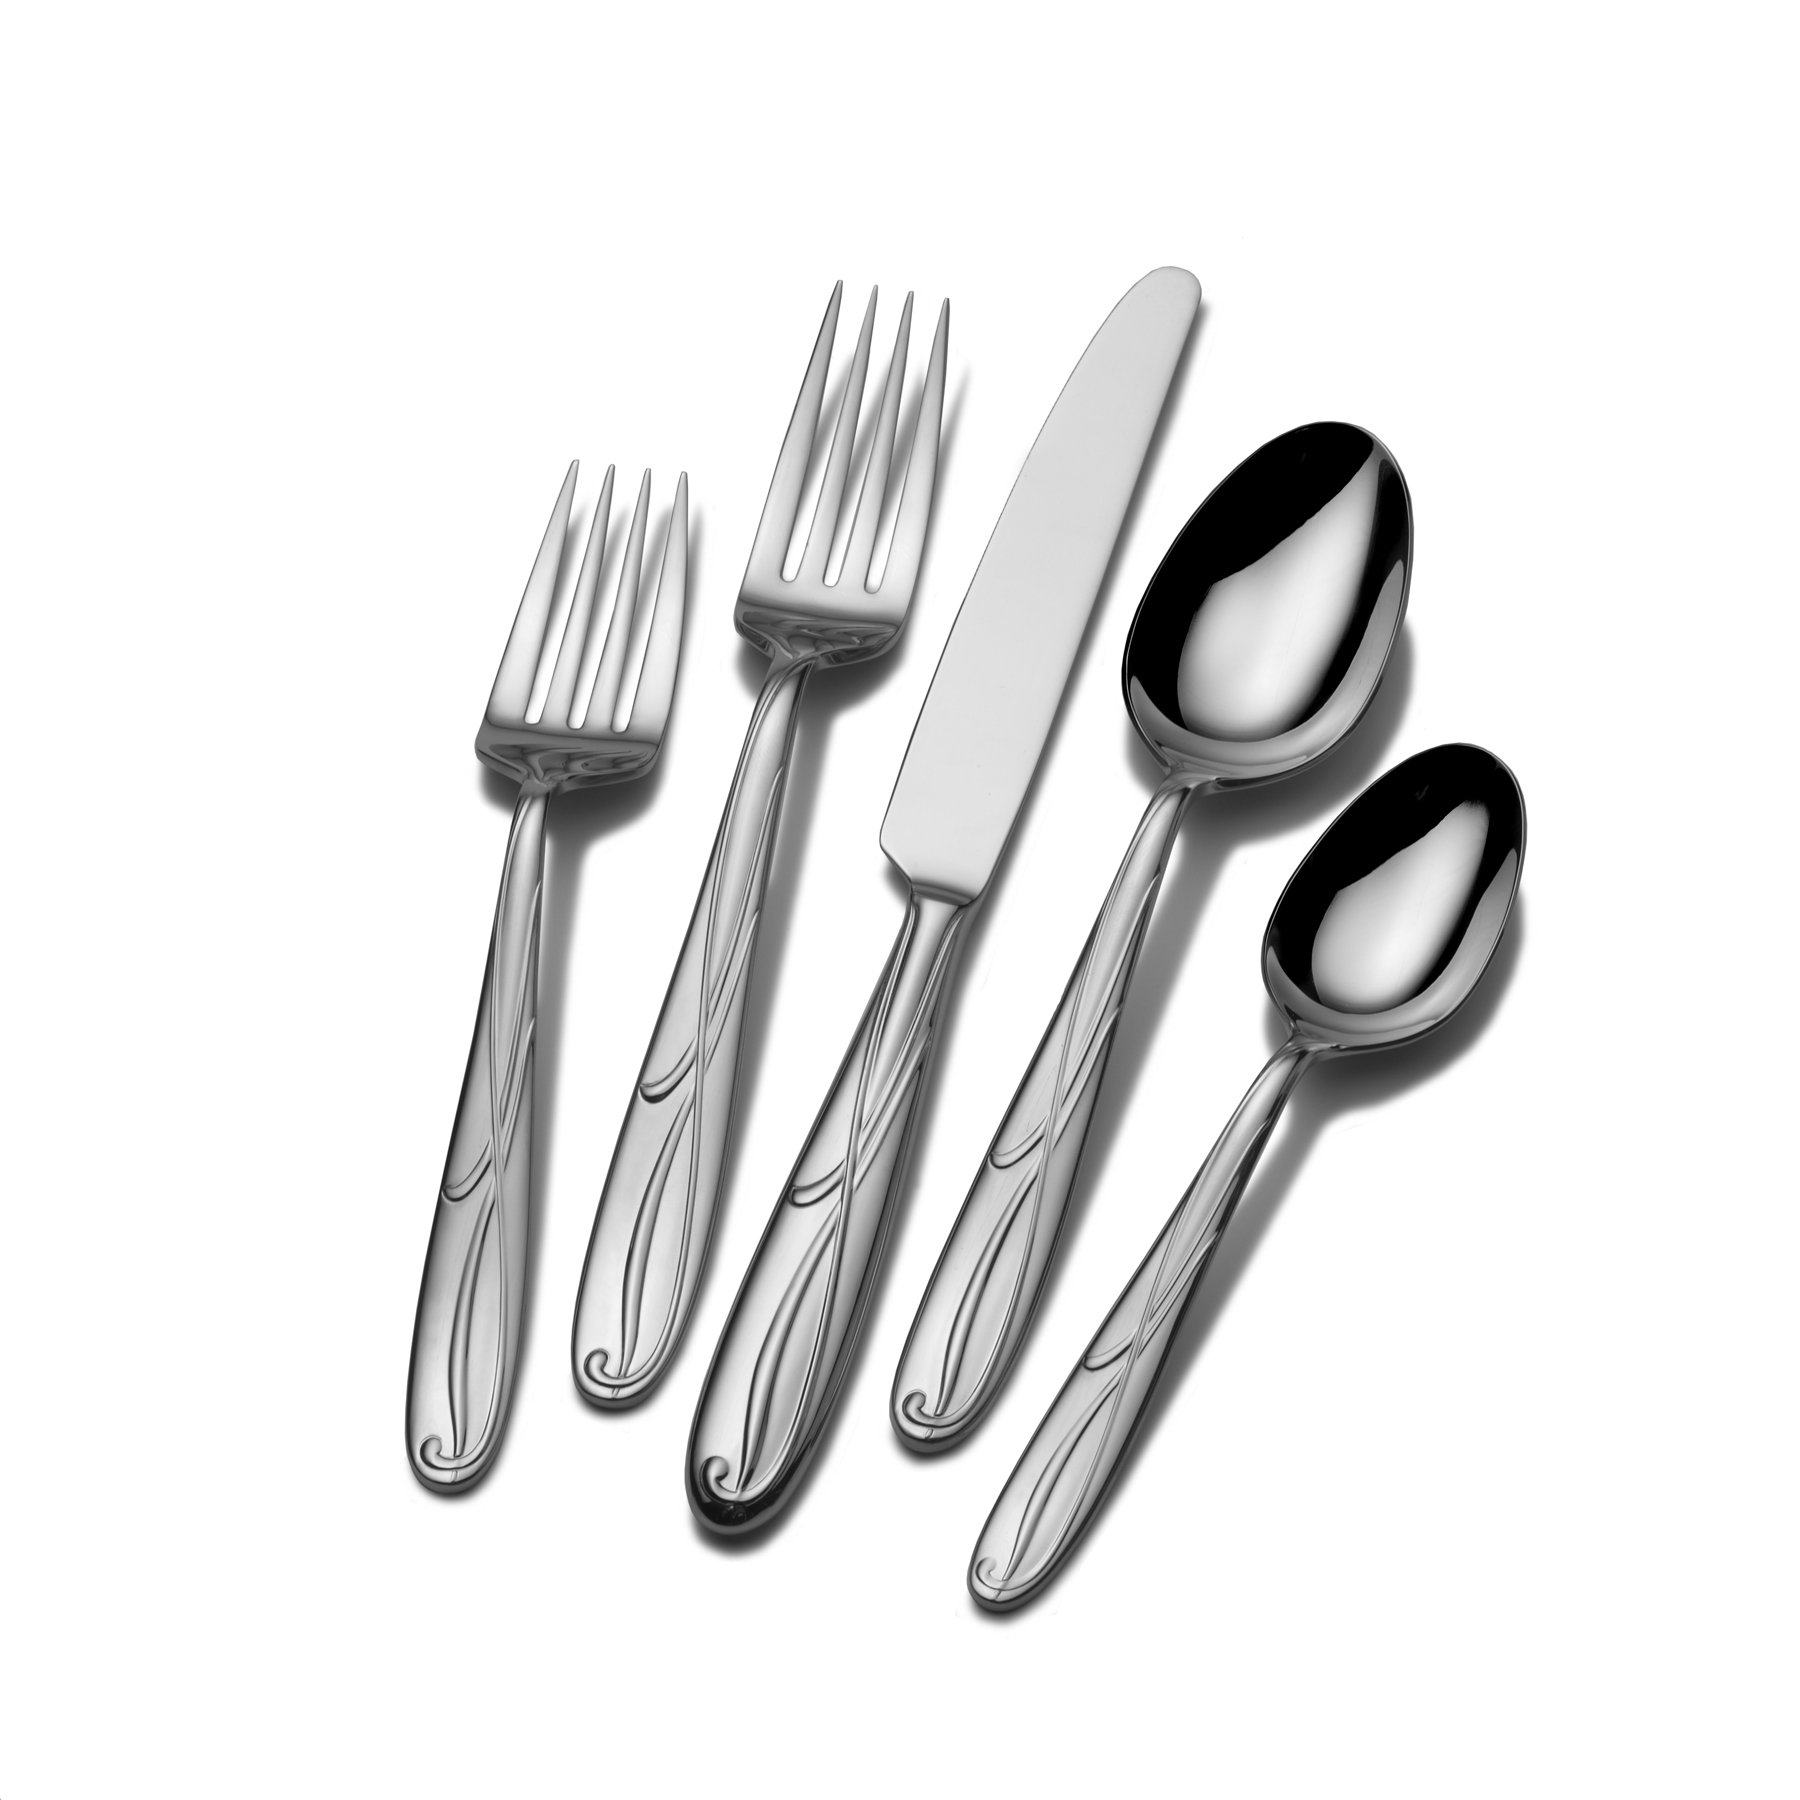 Mikasa 5061639 Cocoa Blossom 65-Piece 18/10 Stainless Steel Flatware Set with Hostess Serving Utensil Set, Service for 12